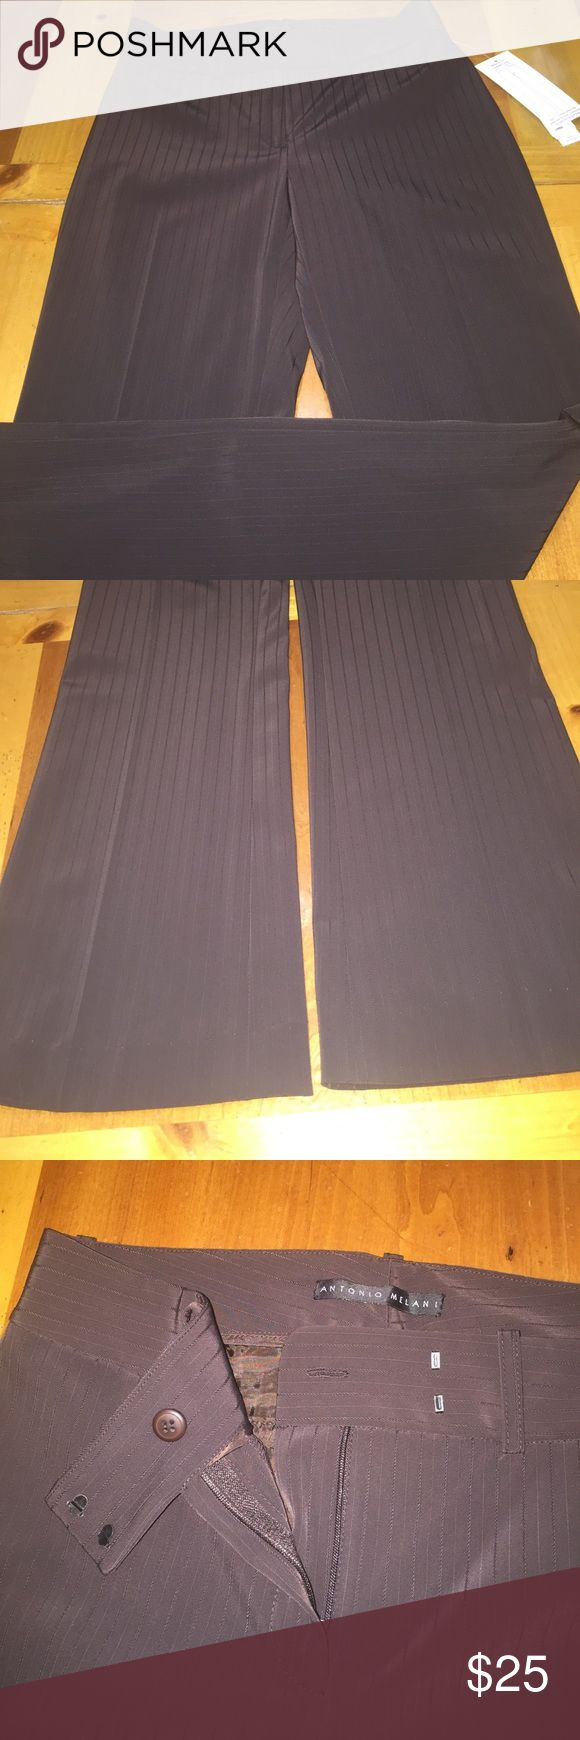 NWT Antonio Melani brown slacks NWT Antonio Melani chocolate brown slacks.  Is a Maxine fit that sits 1&1/2 inches below waist with fly front and is contoured through the hip and thigh. Has 2 back pockets. There is a jacket that matches these slacks that I posted also if interested. ANTONIO MELANI Pants Straight Leg